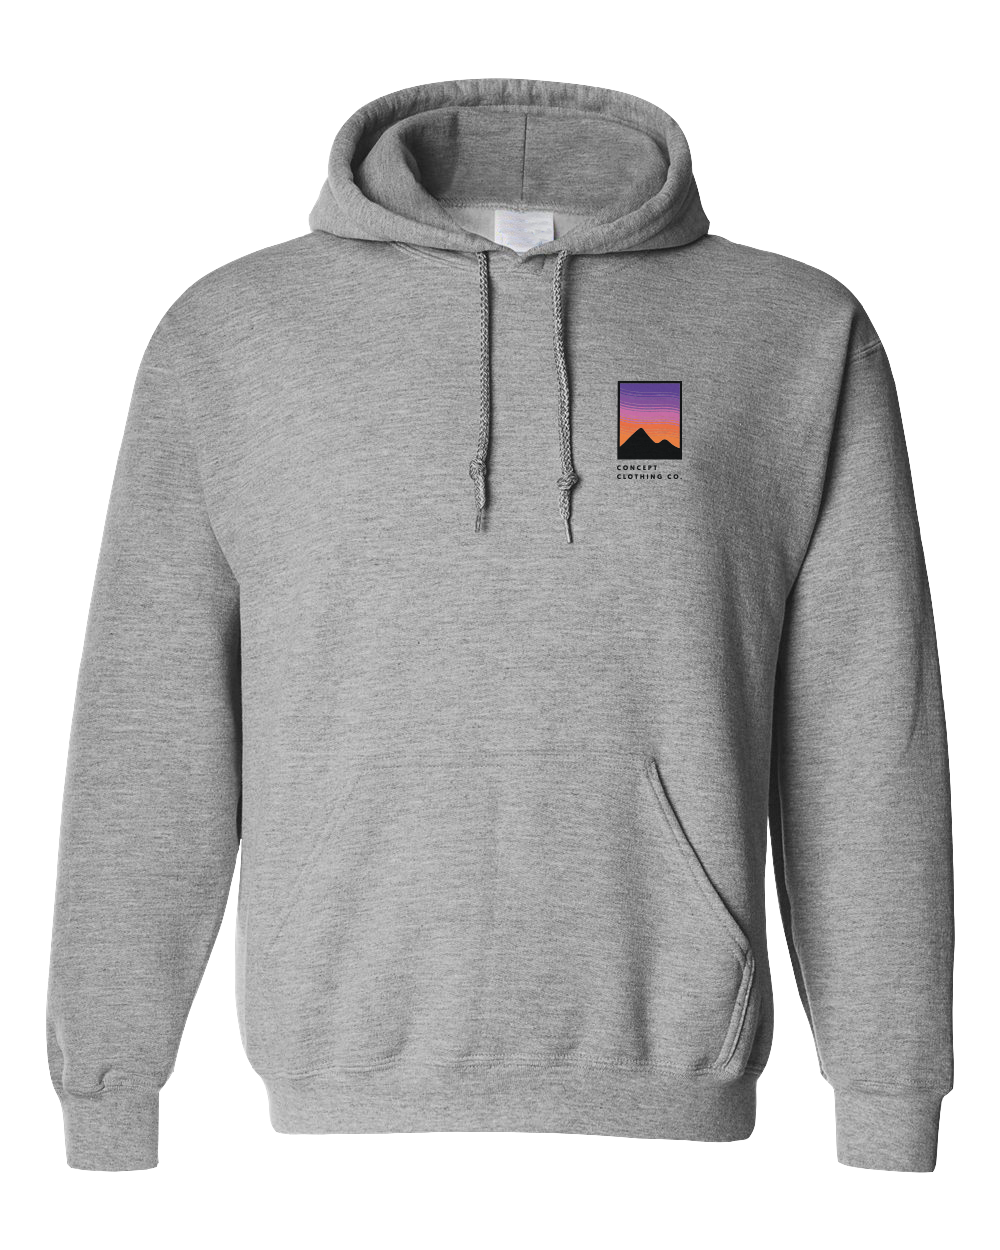 Hoodie | Concept sunset - Grey